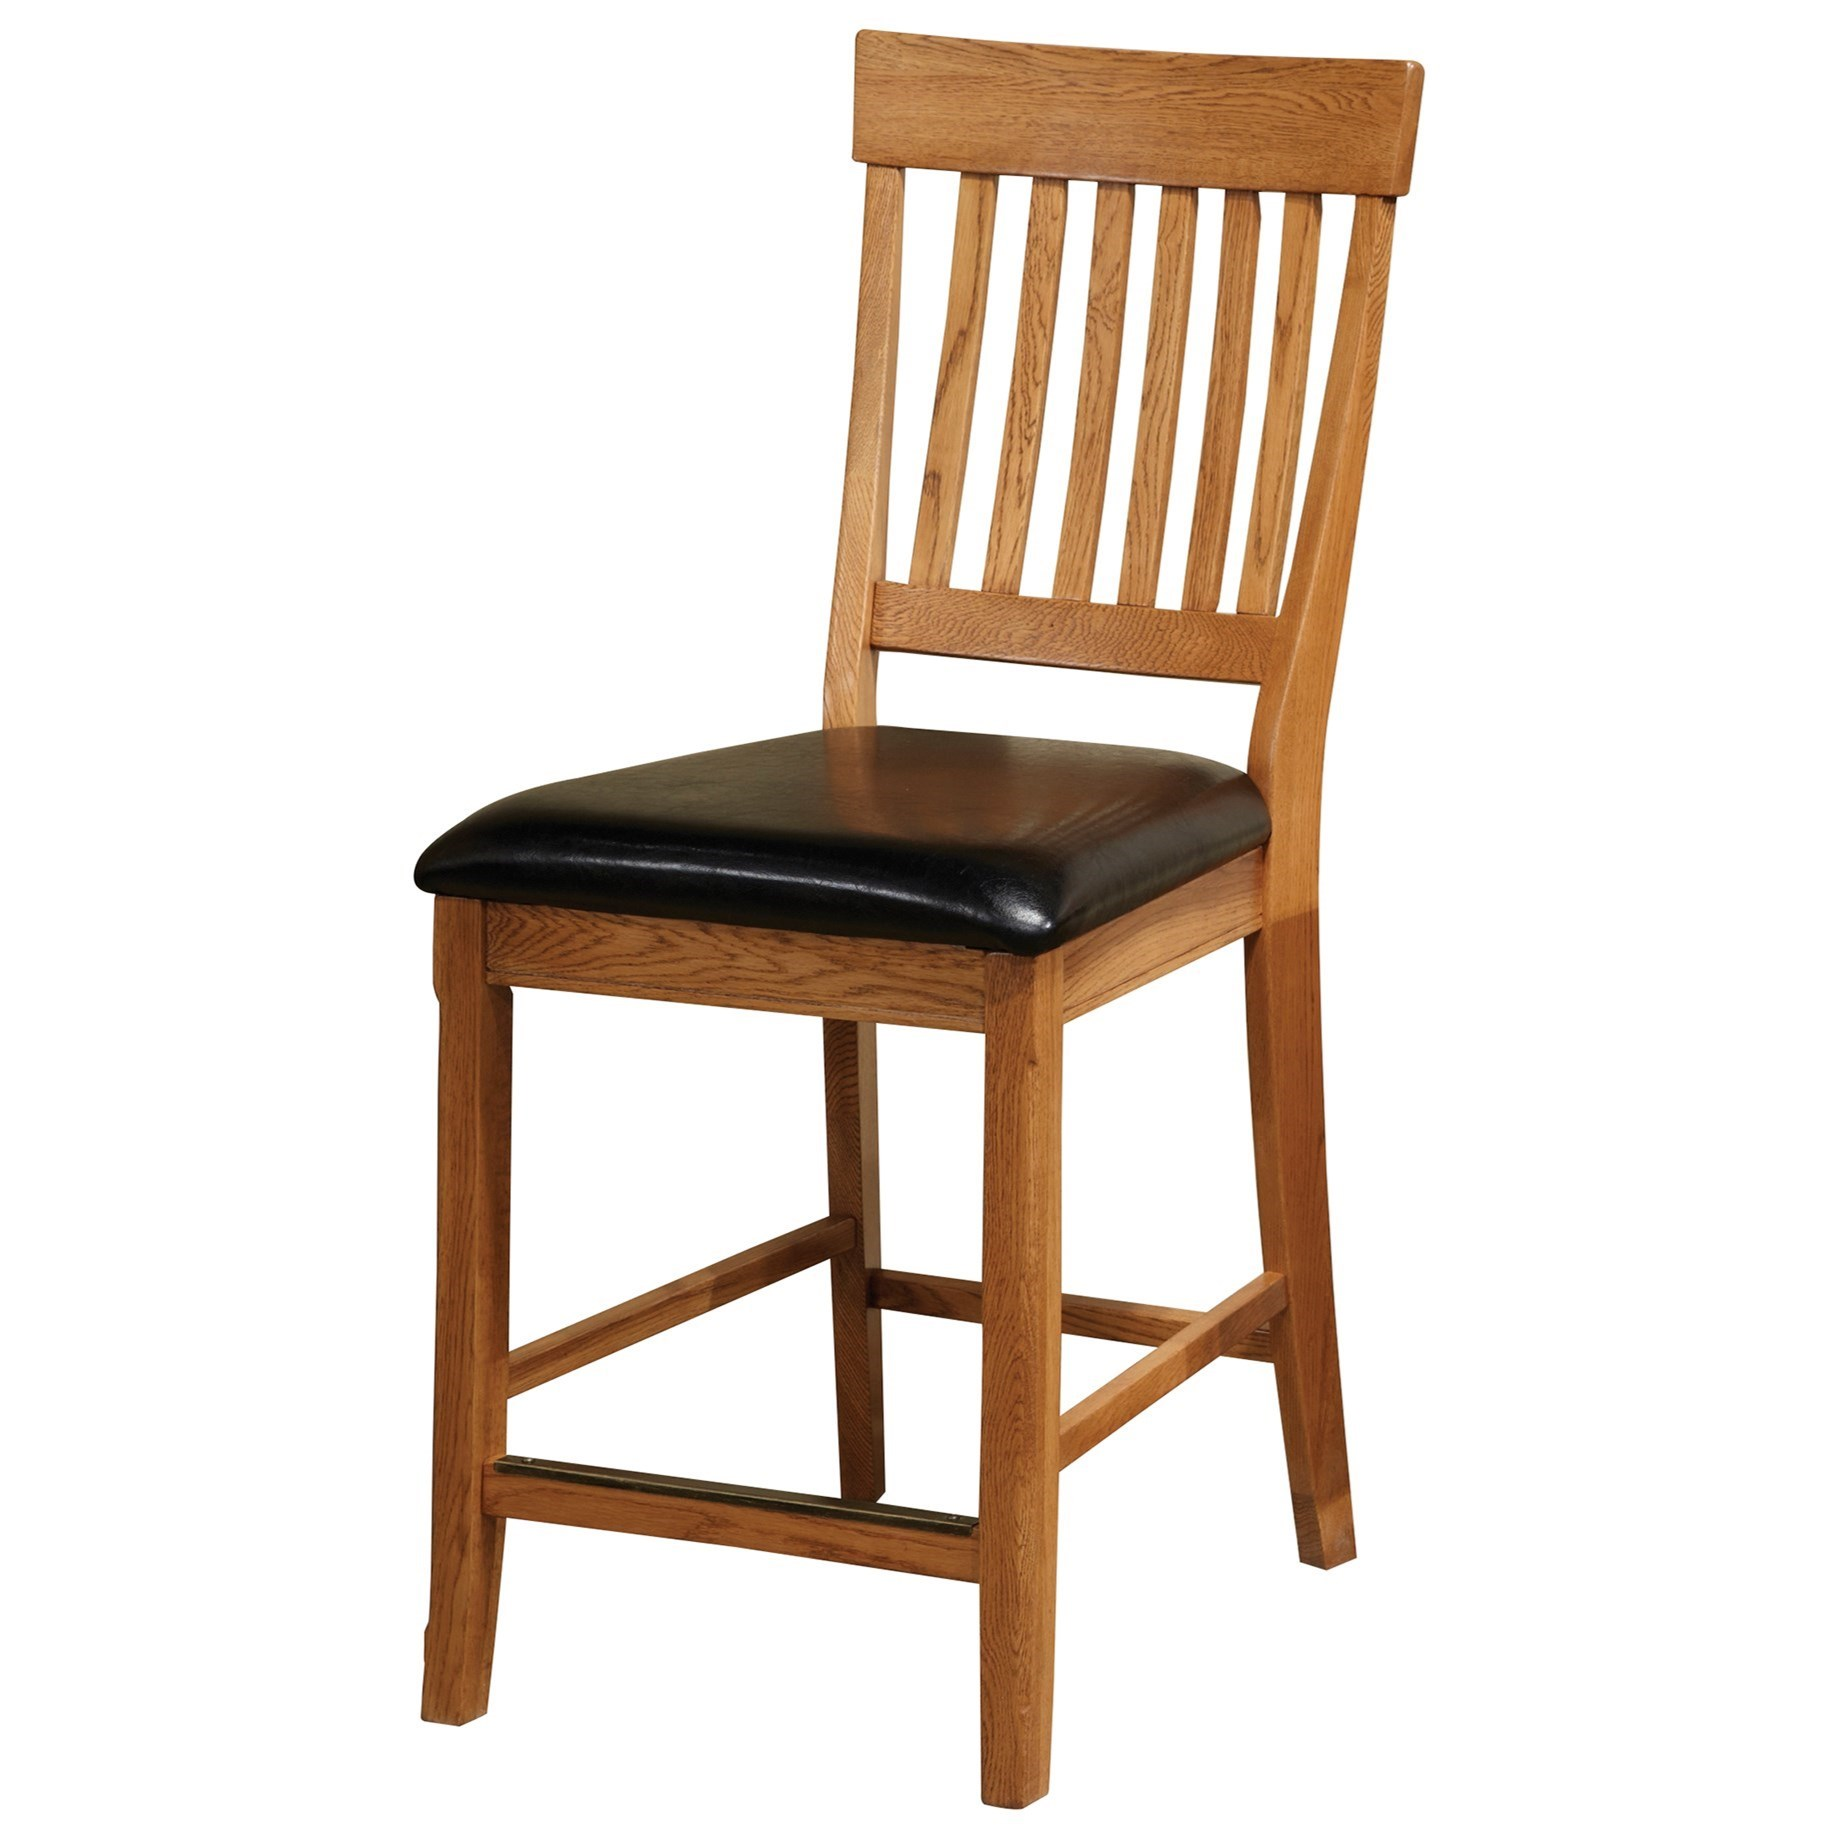 "Intercon Family Dining 24"" Bar Stool with Slat Back - Item Number: FD-BS-180C-CNT-K24"